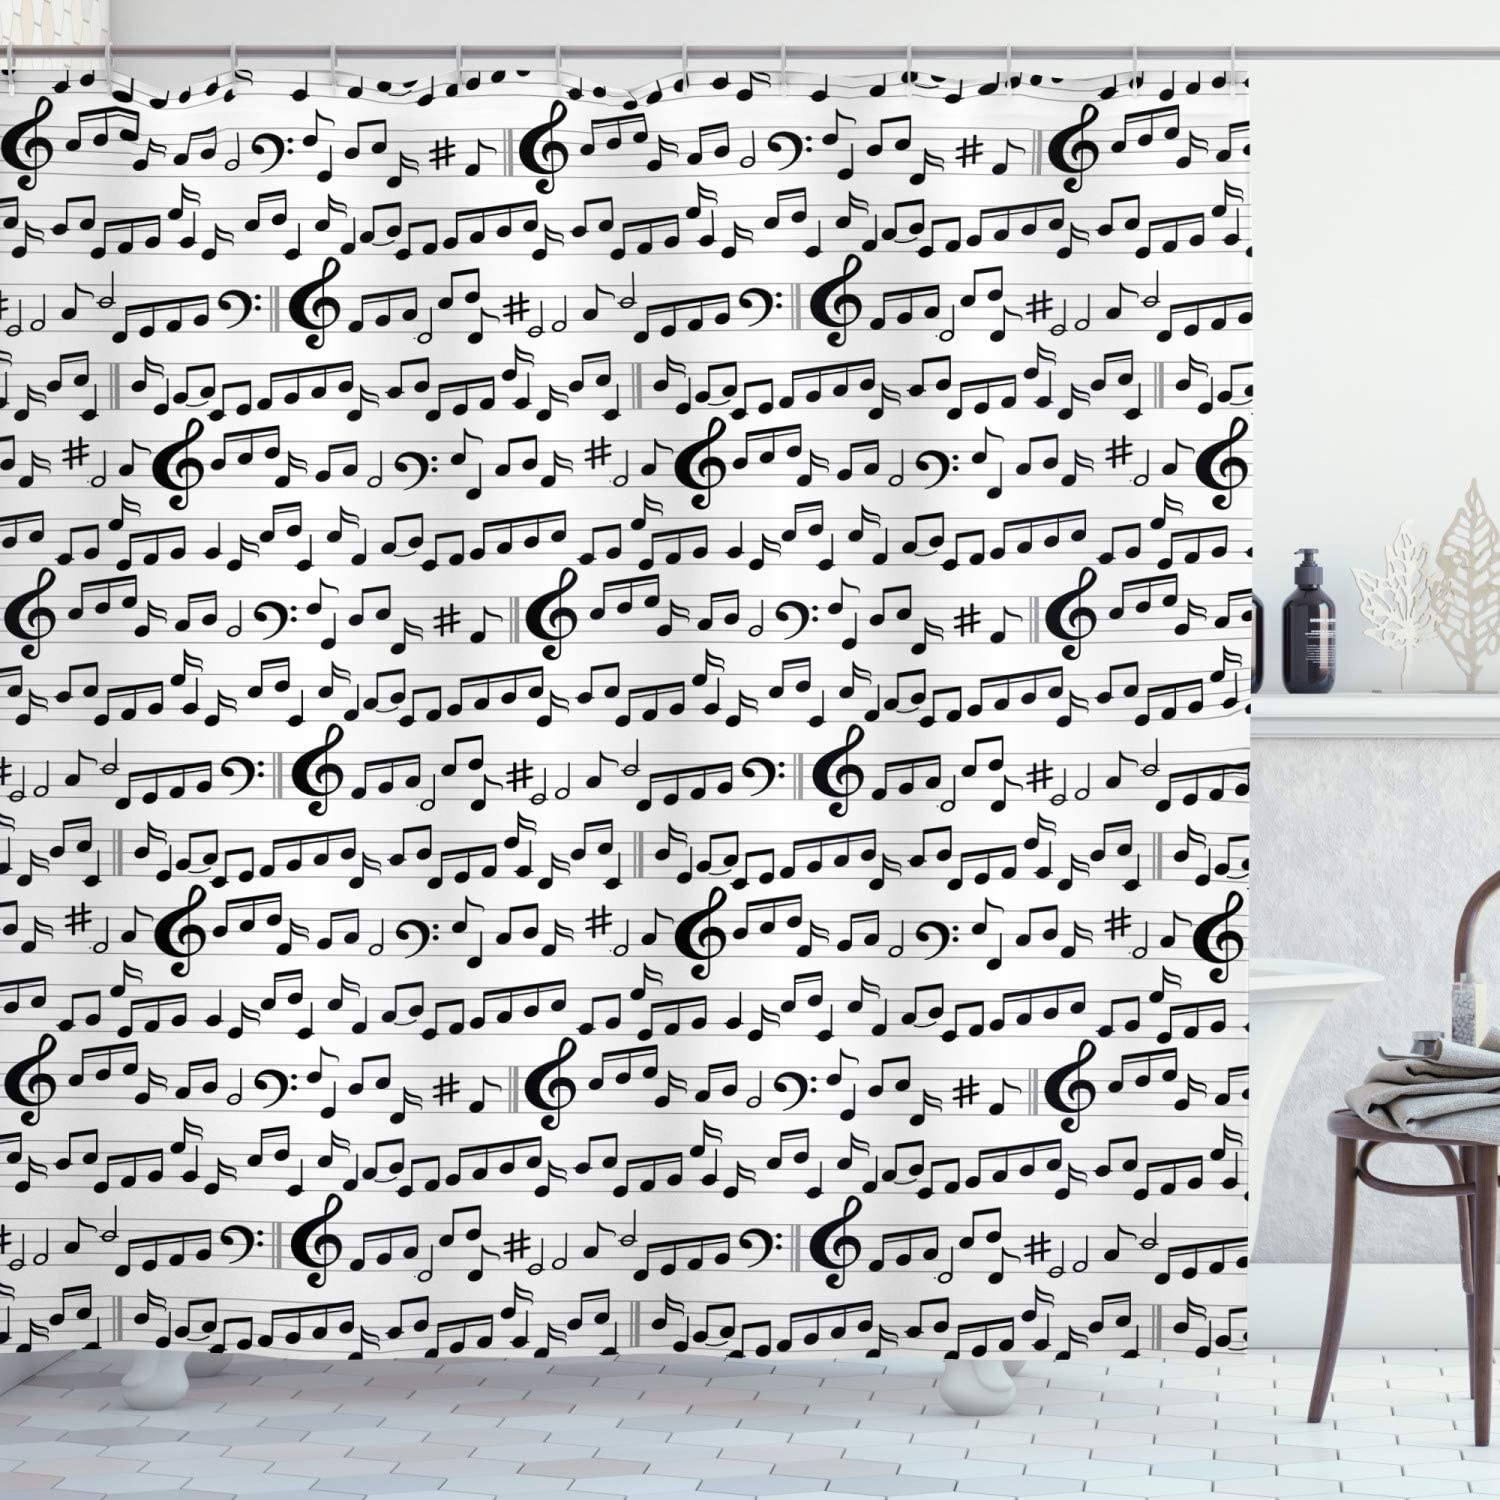 Ambesonne Music Shower Curtain, Abstract Style Professional Music Pattern with Notes and Clef Sheet Play Writing, Cloth Fabric Bathroom Decor Set with Hooks, 84